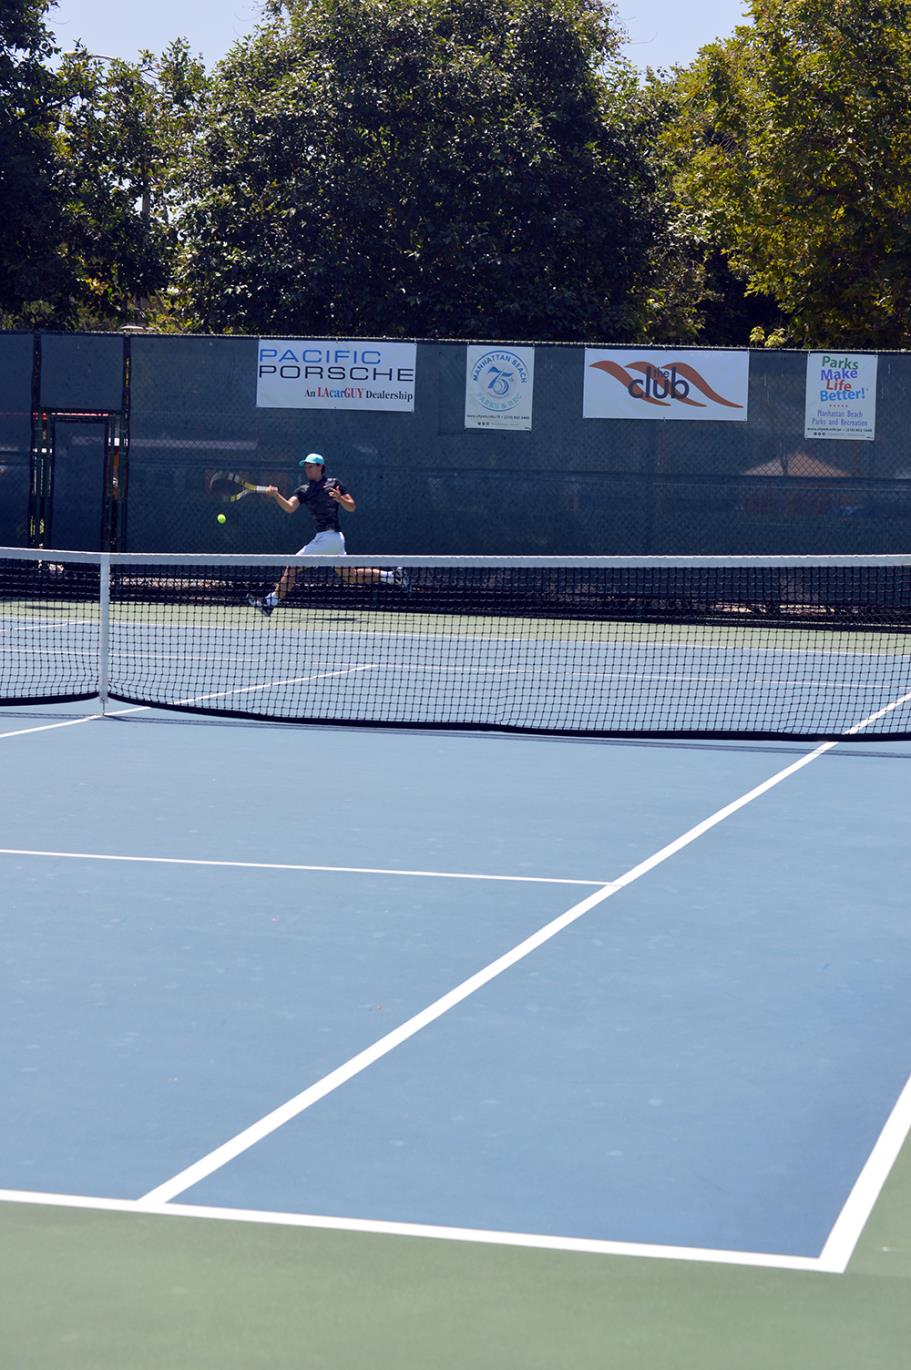 Player returning the ball at Live Oak Park Tennis Courts